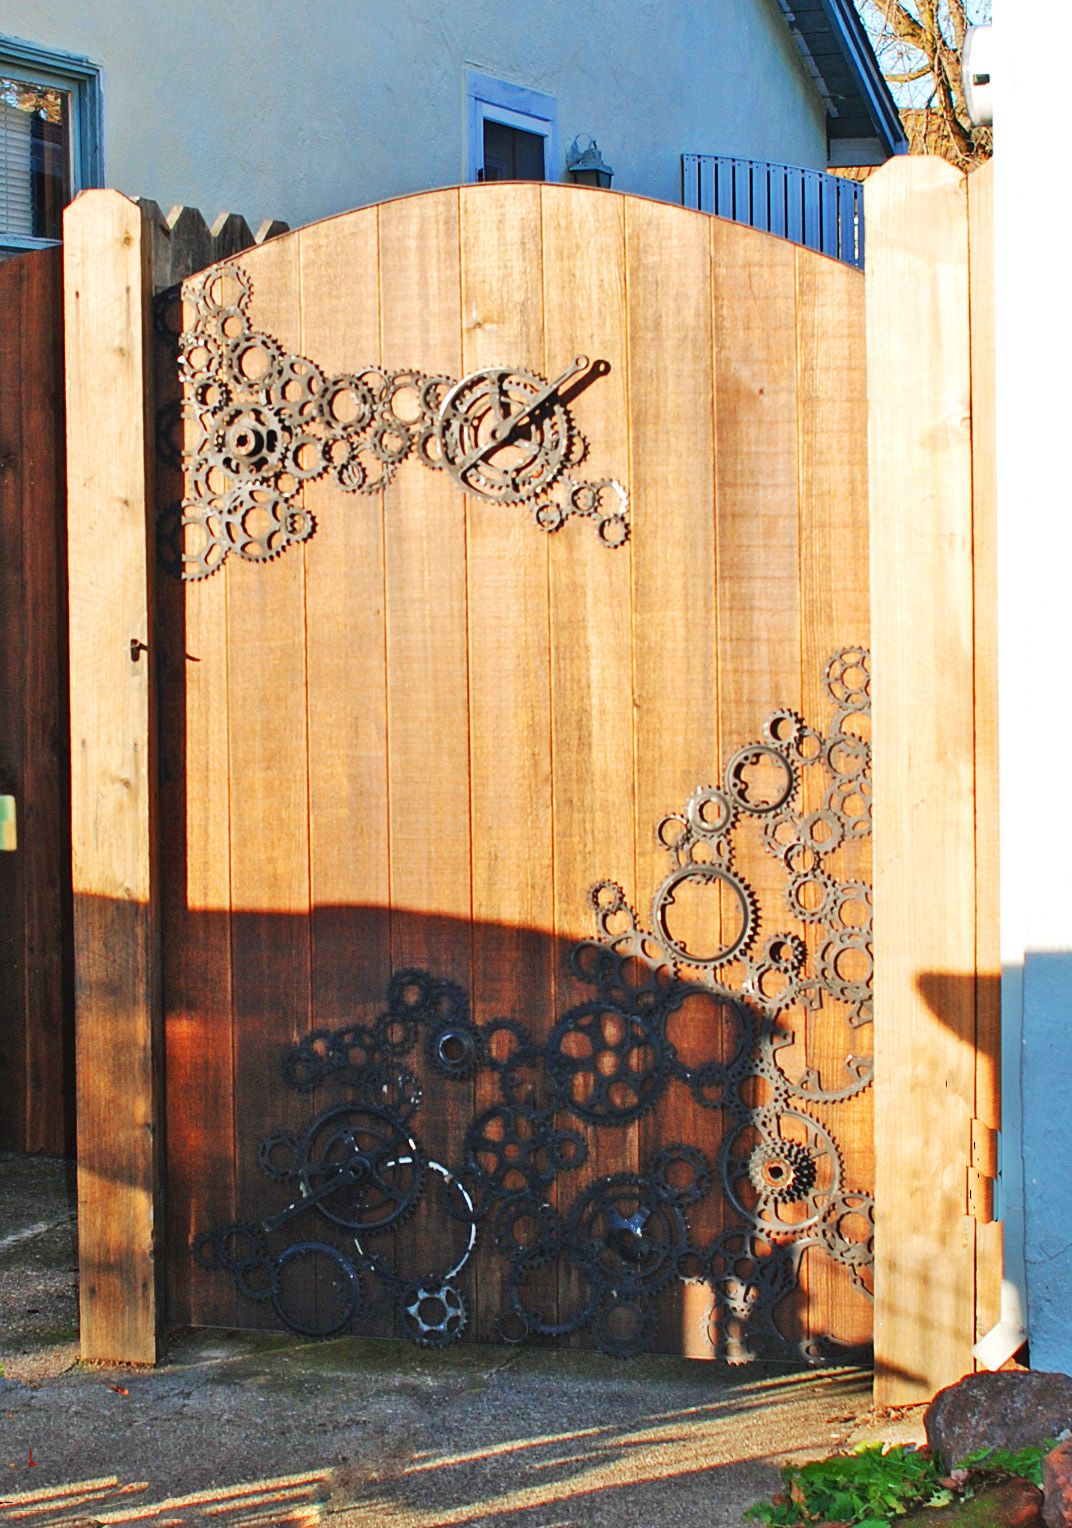 Recycled Gate | My own creations | Pinterest | Gate, Fences and Yards